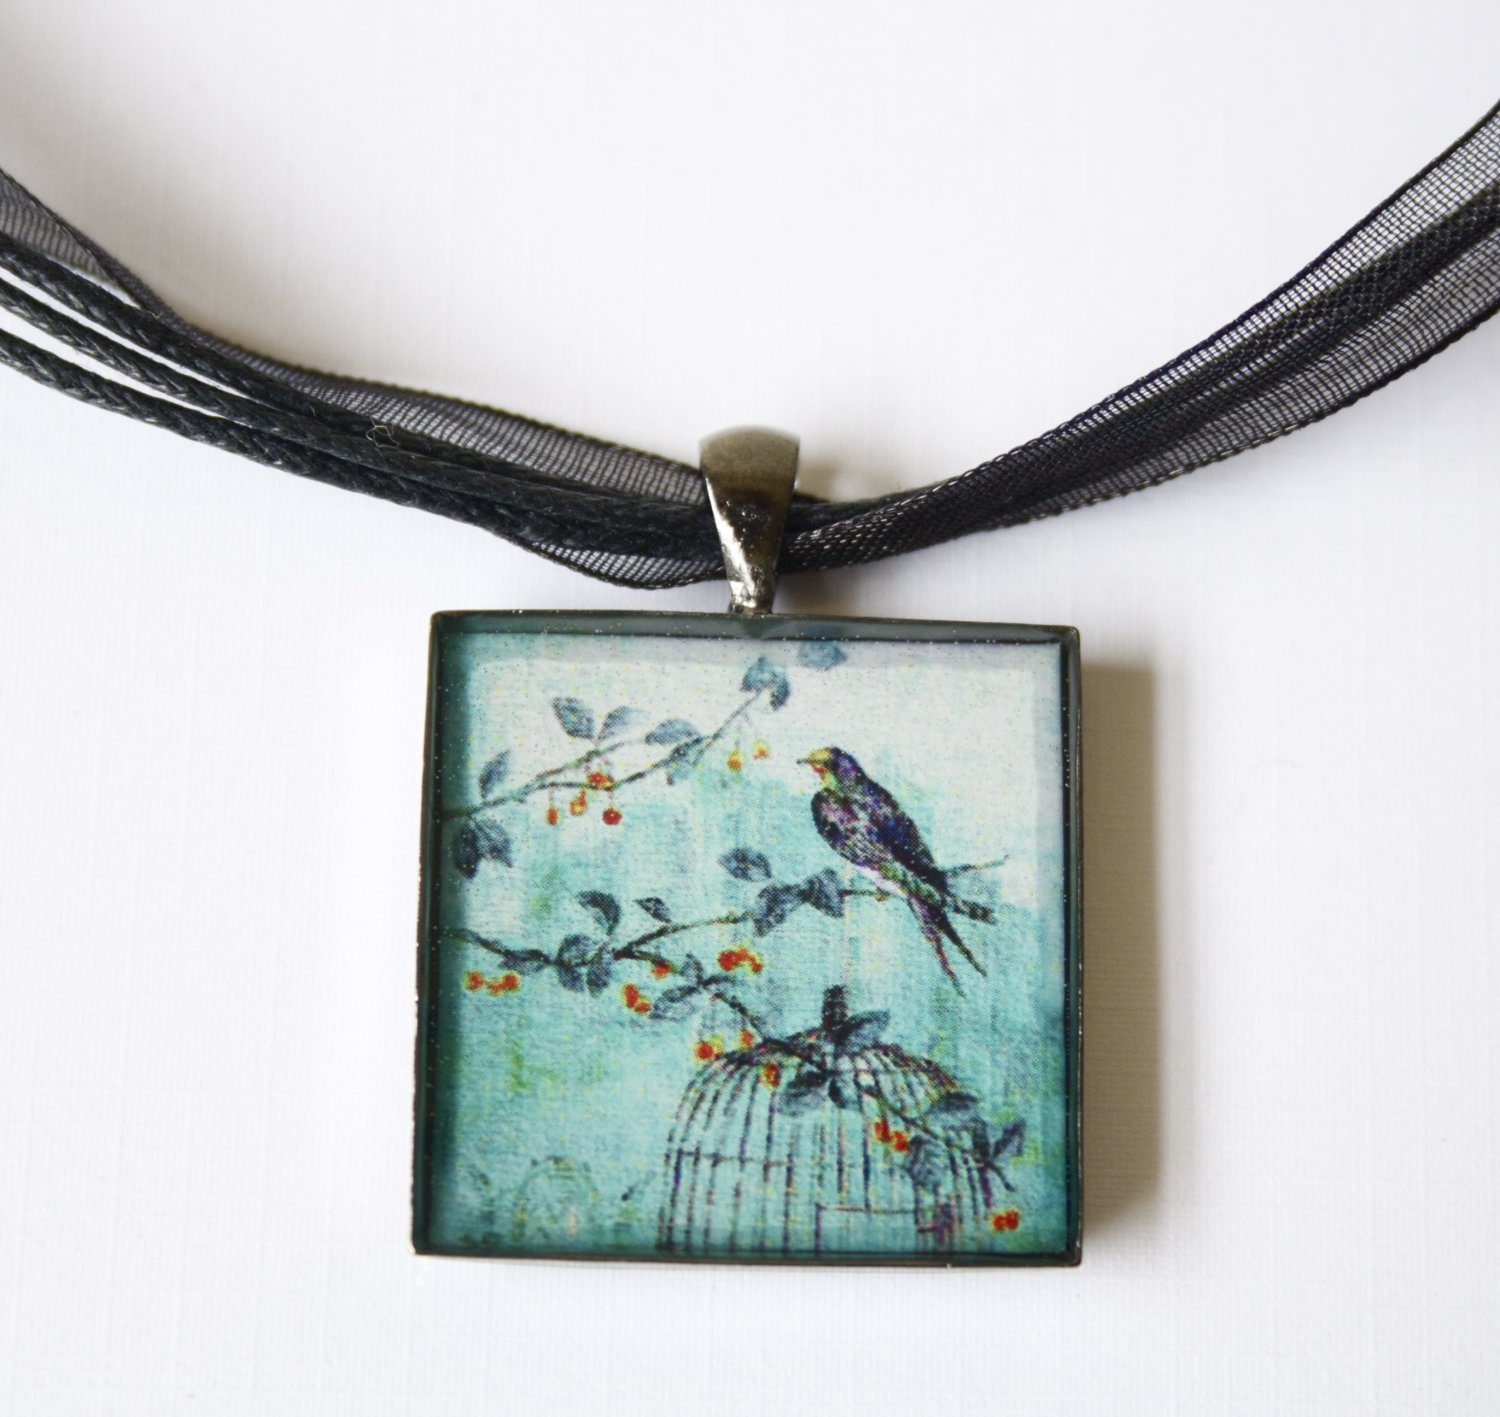 Turquoise Jewellery Bird Cage Resin (glass like) Square Pendant w Black Ribbon necklace